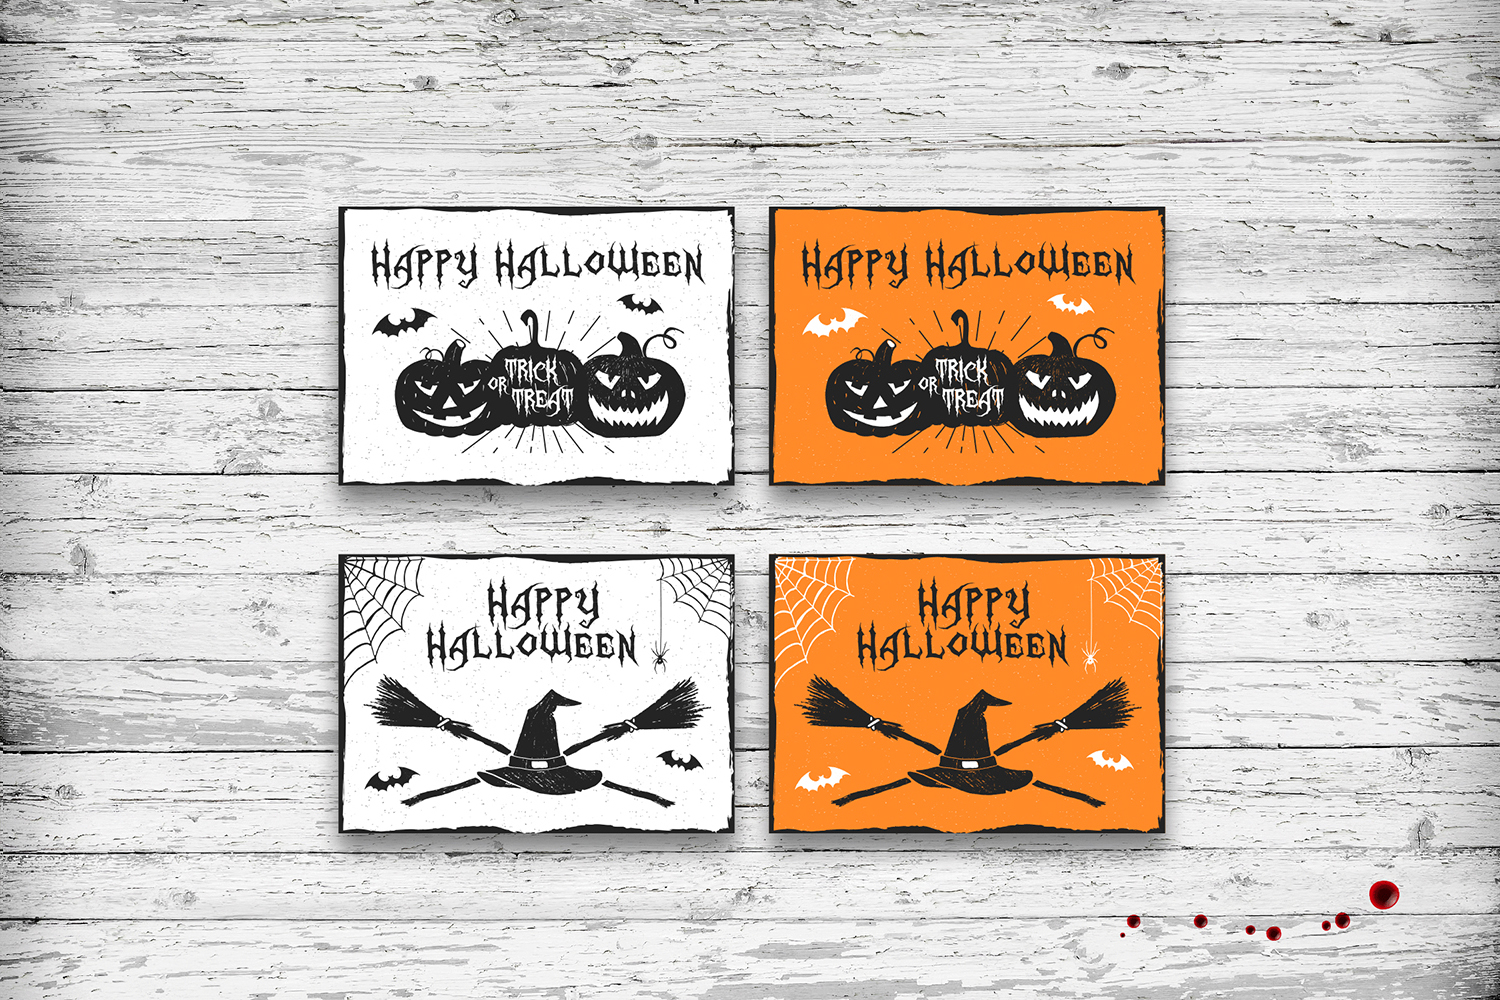 Halloween 20 greeting cards by cosmic design bundles halloween 20 greeting cards example image 7 kristyandbryce Images